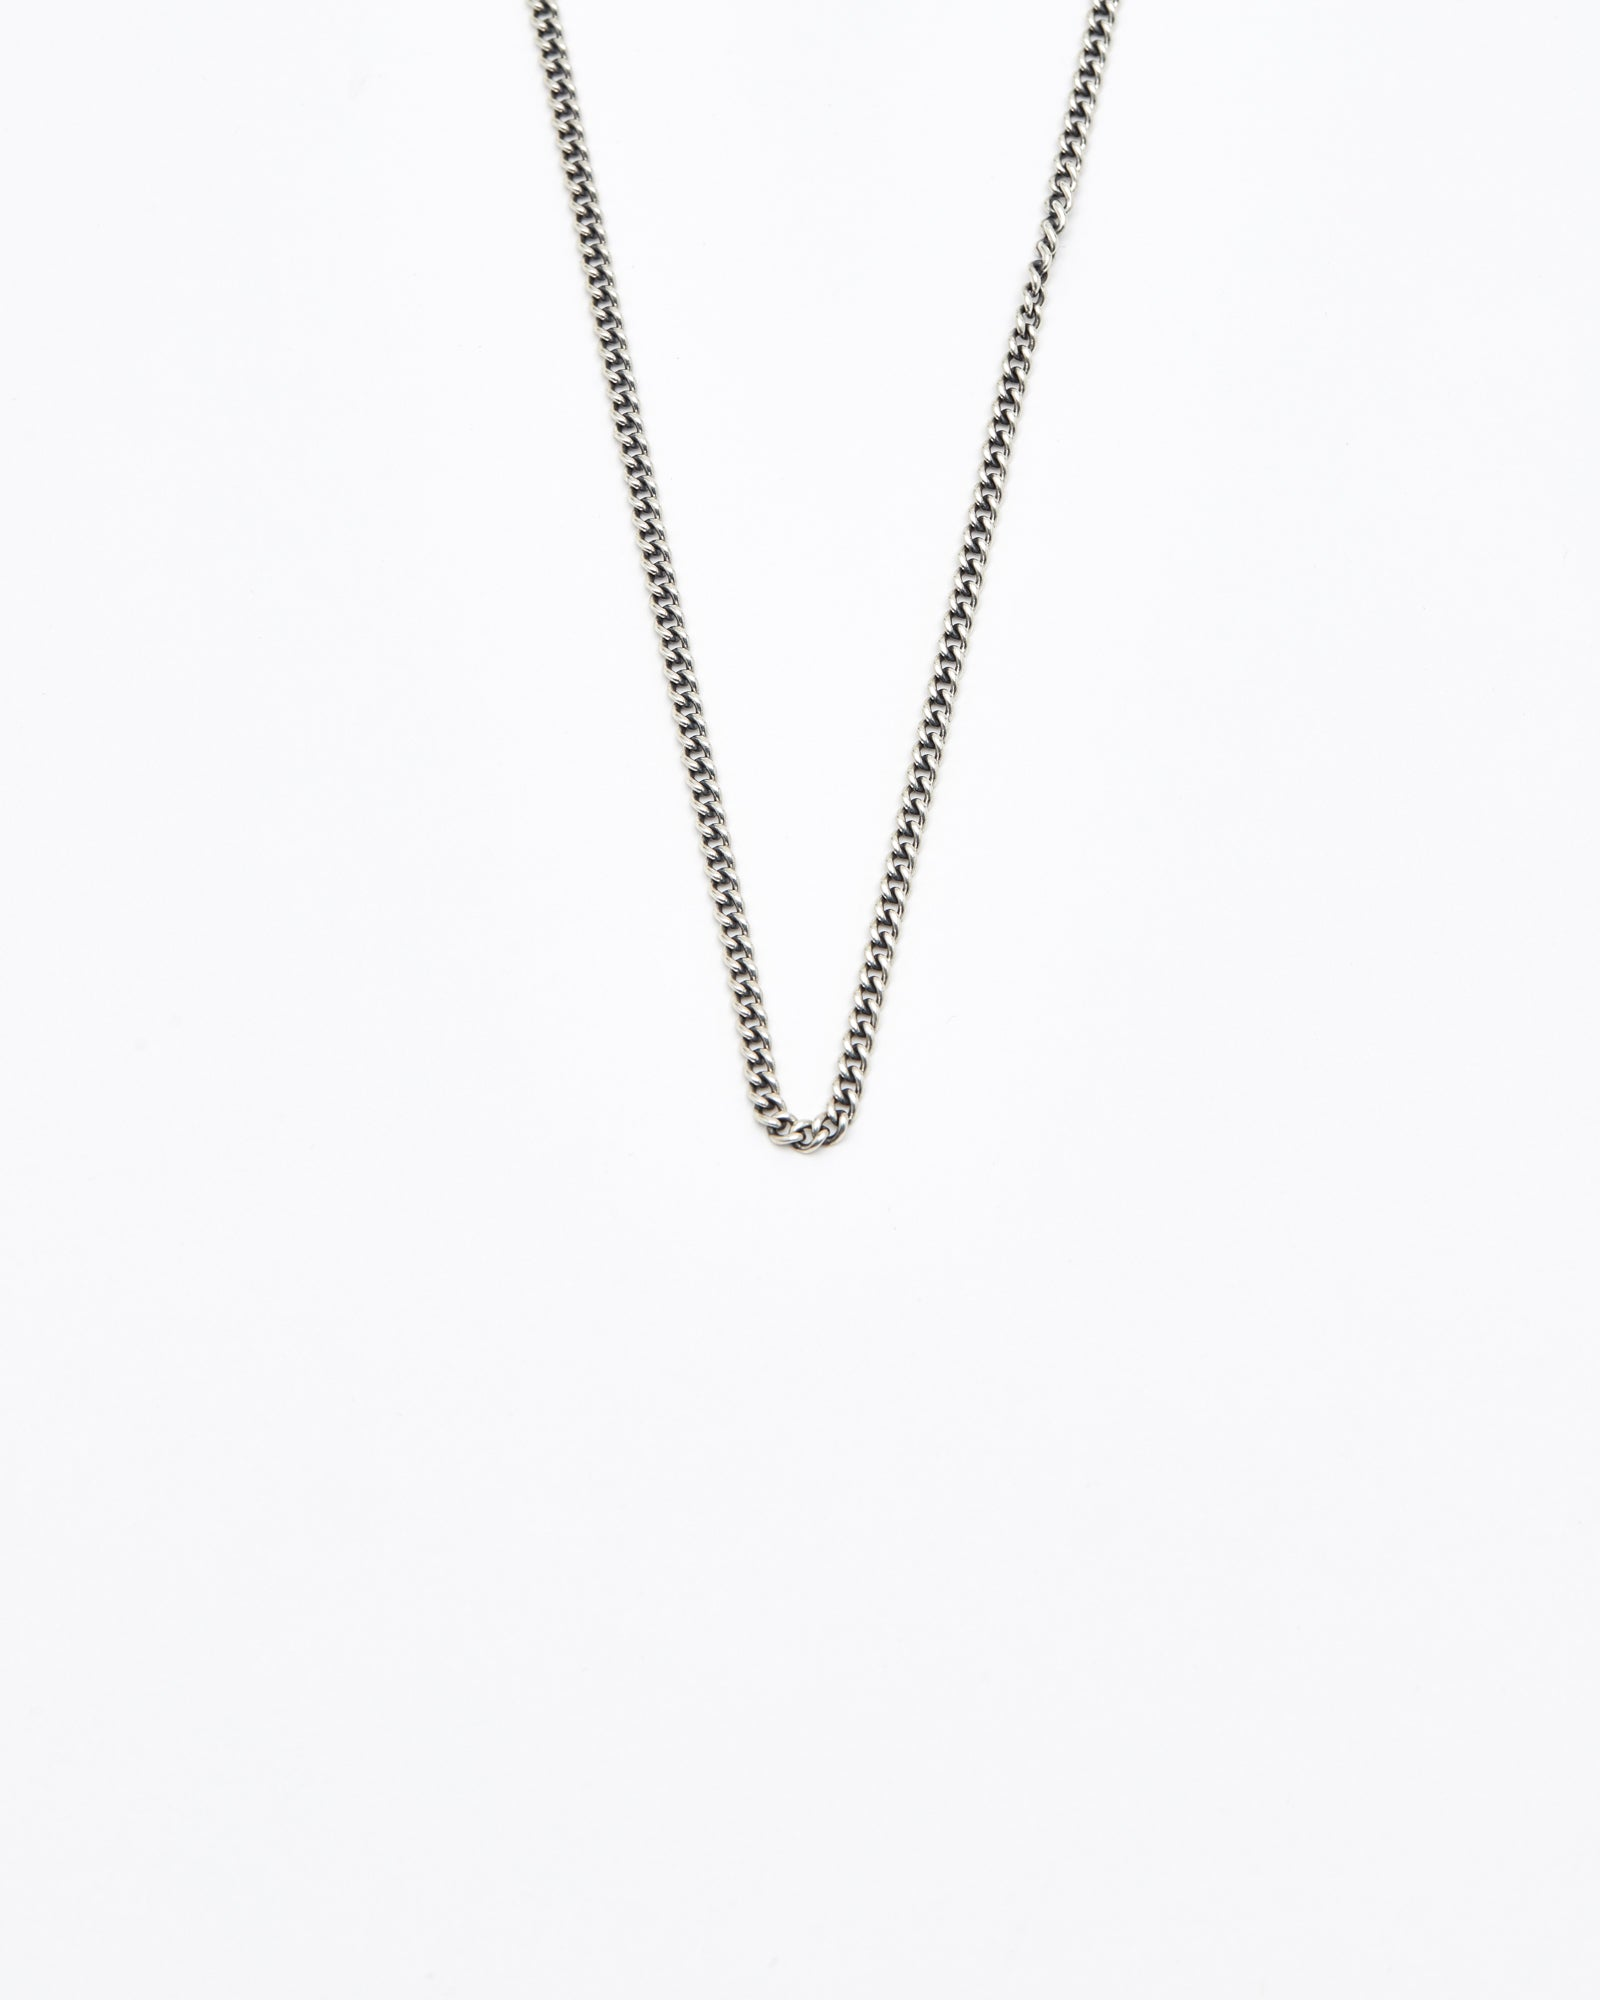 Curb Chain Necklace, #3, Sterling